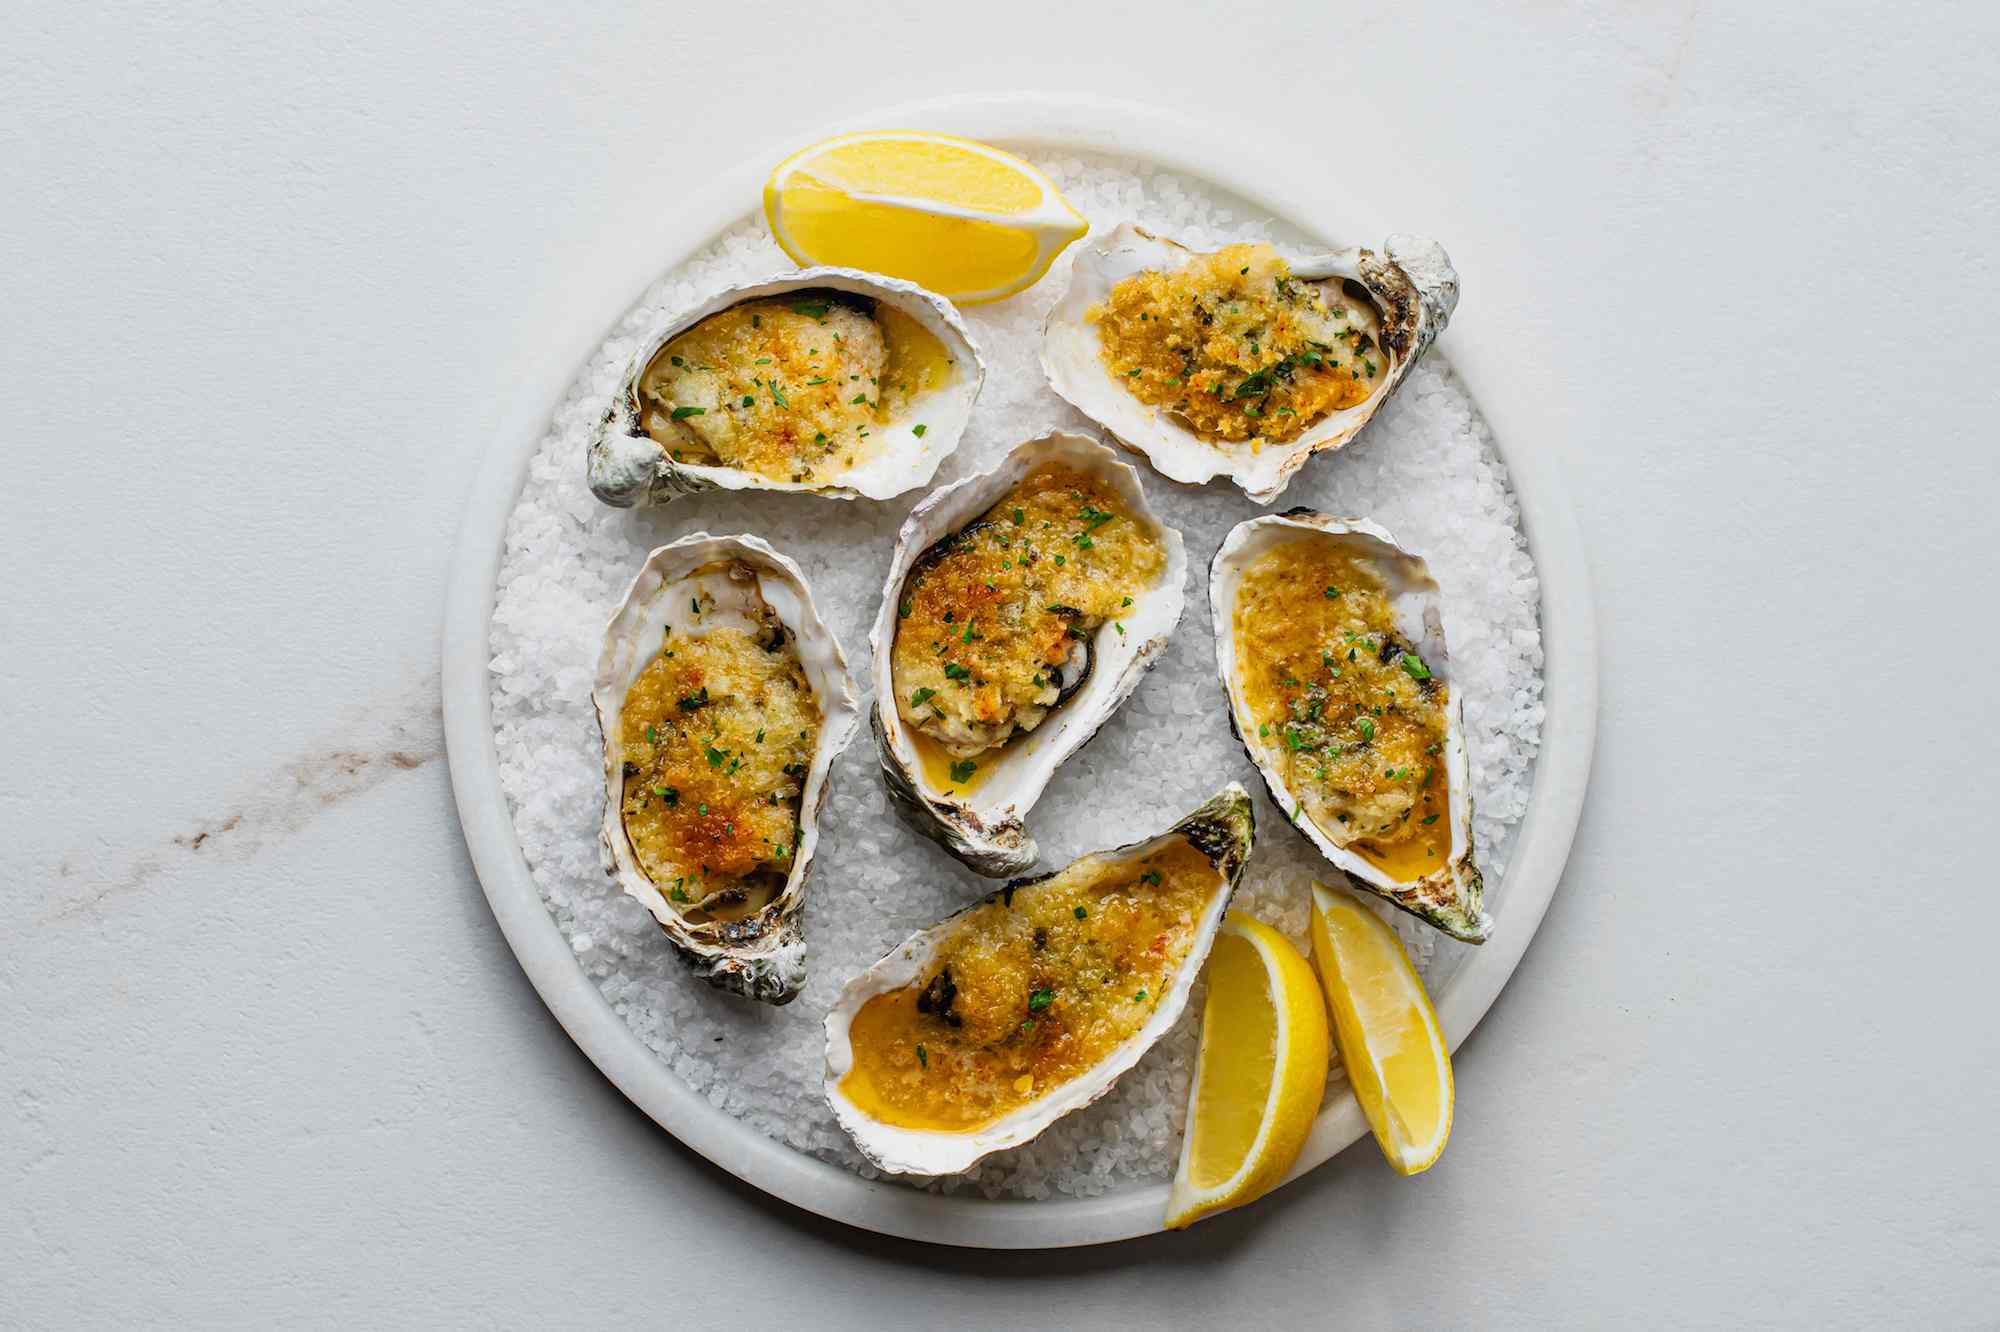 Baked oysters on a serving plate with lemon wedges